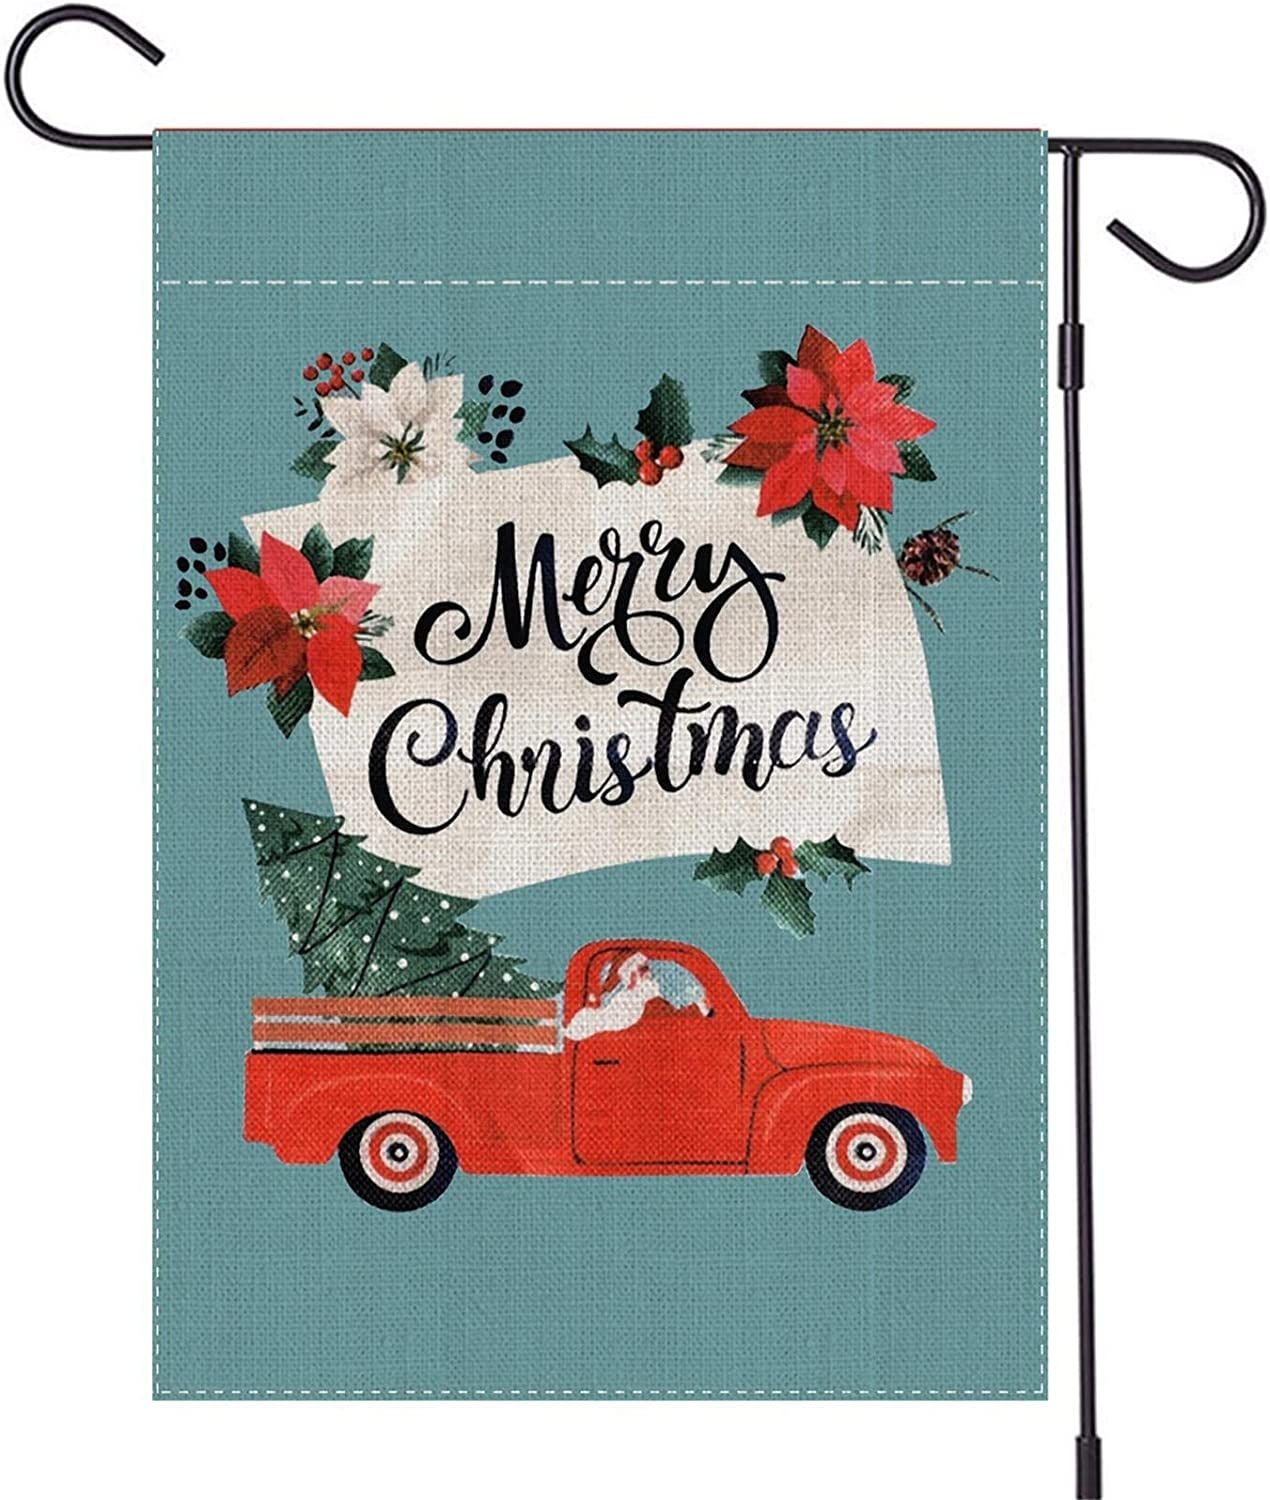 TGOOD Merry Christmas Garden Flag Winter Outdoor Decorations Banner,Durable Burlap-Double Sided Santa Driving Red Truck Christmas Tree,House Yard Xmas Holiday Party Sign-Seasonal Flag 12.5x18 inch